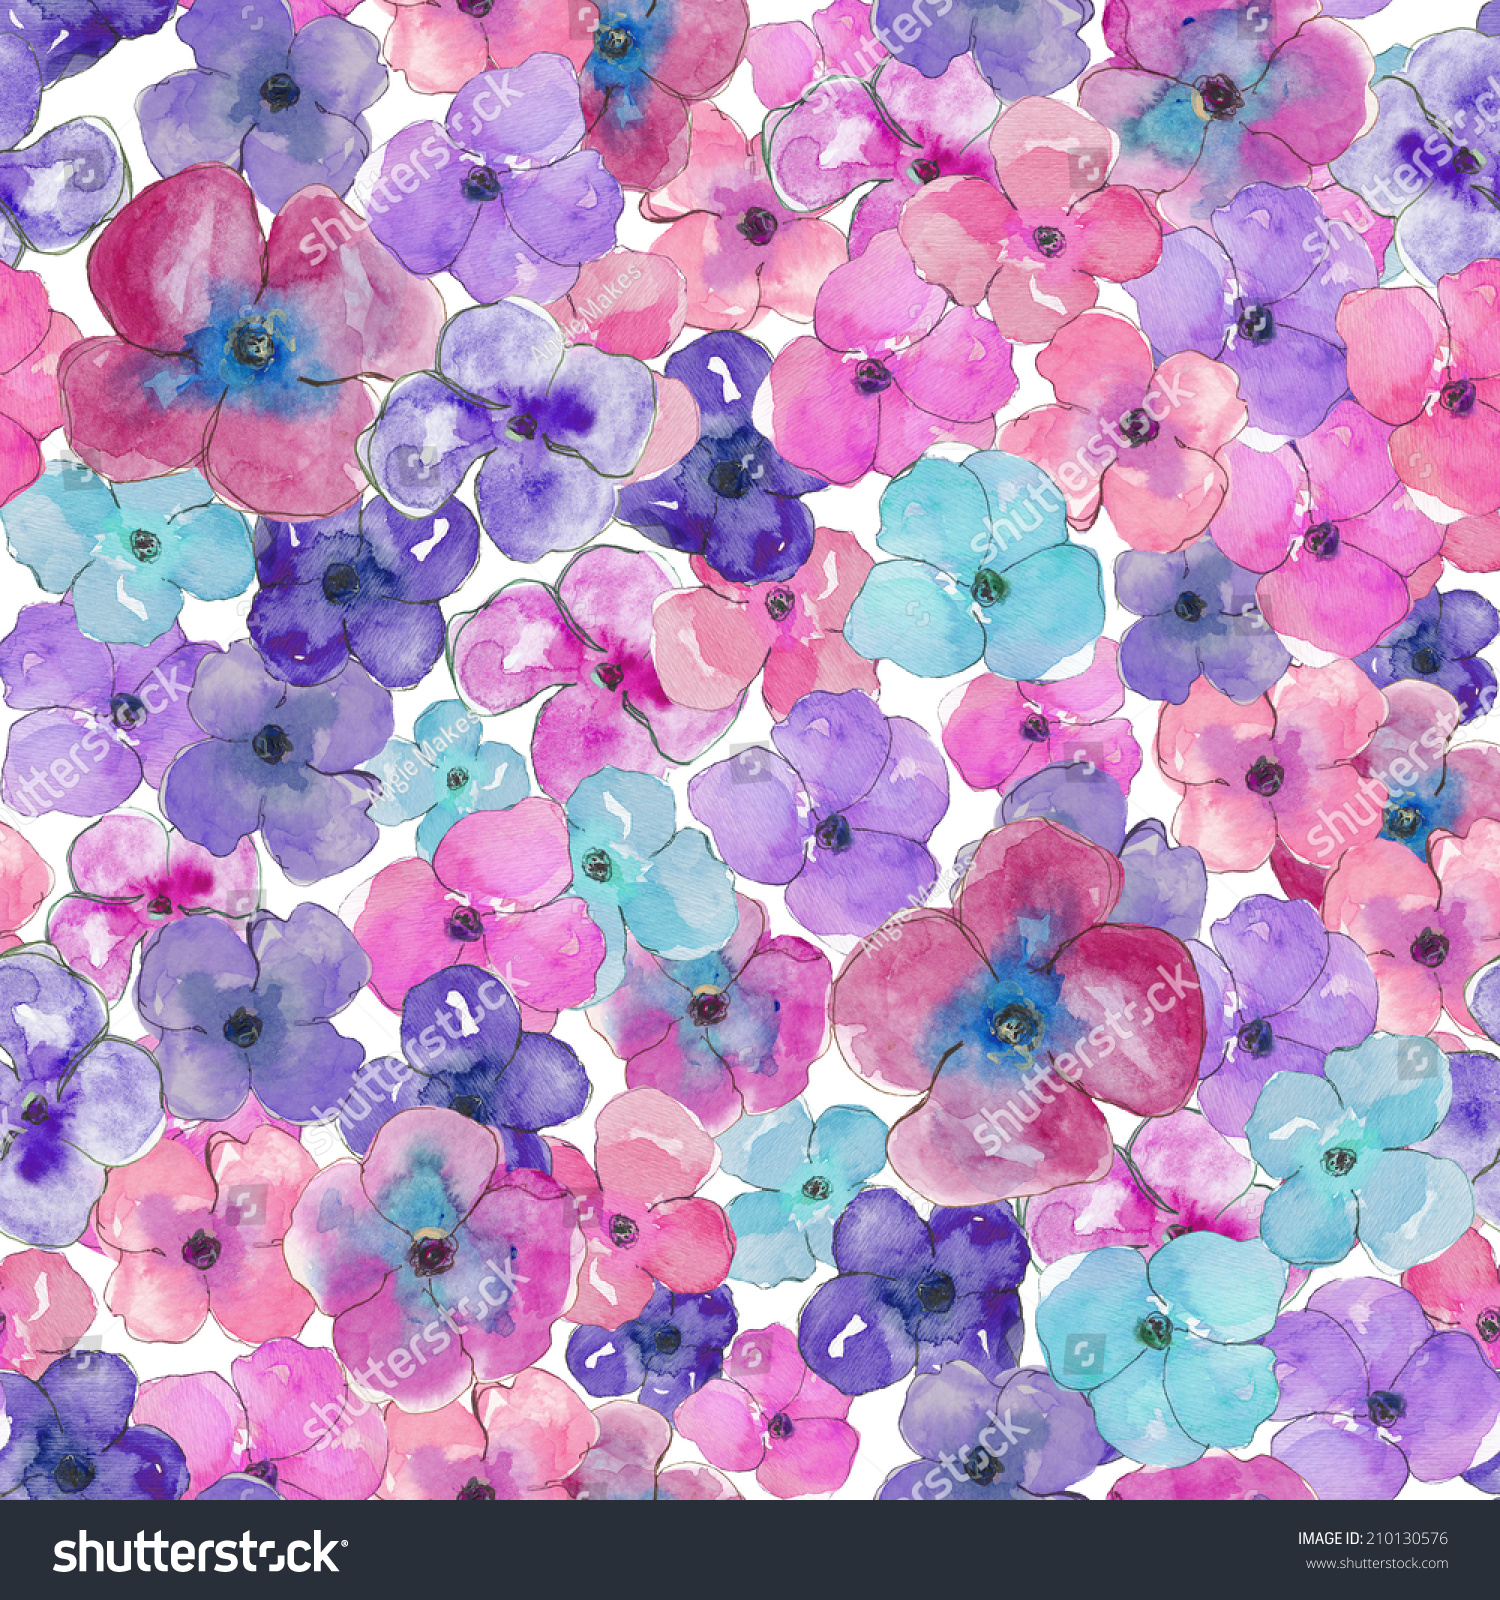 Cool Tumblr Desktop Backgrounds : stock photo watercolor pansies background purple and pink painted flower background seamless pattern 210130576 from pixelrz.com size 1500 x 1600 jpeg 1443kB